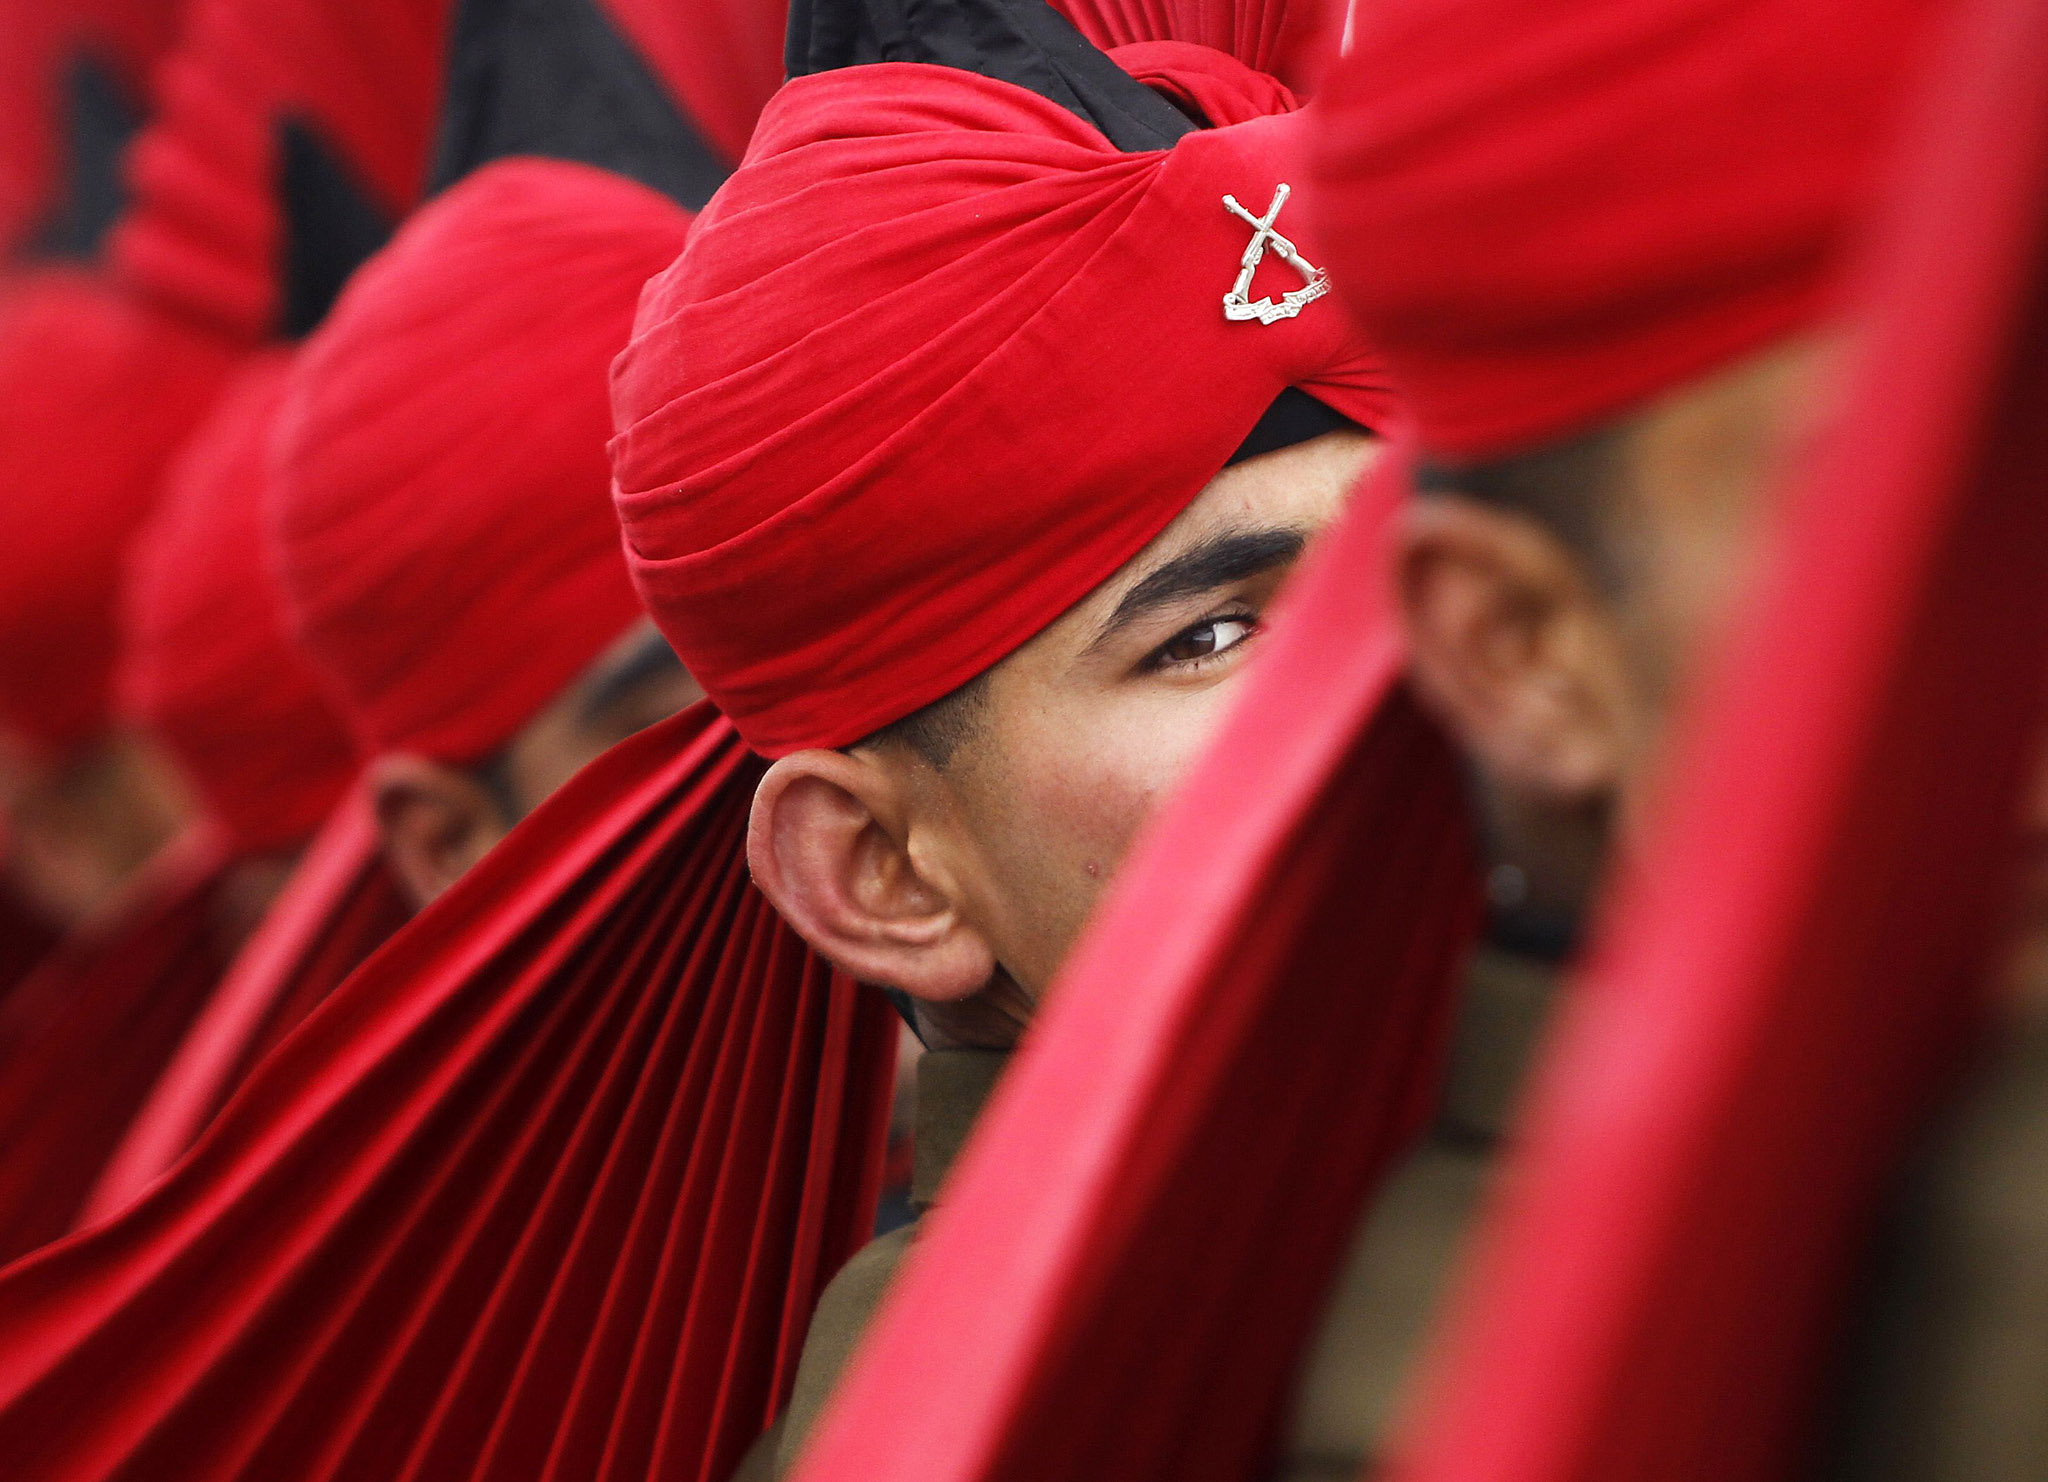 An Indian army recruit wearing ceremonial uniform looks during passing out parade at garrison in Rangreth on outskirts of Srinagar...An Indian army recruit wearing his ceremonial uniform looks on as he marches during their passing out parade at a garrison in Rangreth on the outskirts of Srinagar March 4, 2015. A total of 179 youths from various religious backgrounds were formally inducted into the Indian army's Jammu and Kashmiri Light Infantry Regiment (JKLIR) after their 49 week training, an army official said.  REUTERS/Danish Ismail (INDIAN-ADMINISTERED KASHMIR - Tags: MILITARY TPX IMAGES OF THE DAY)